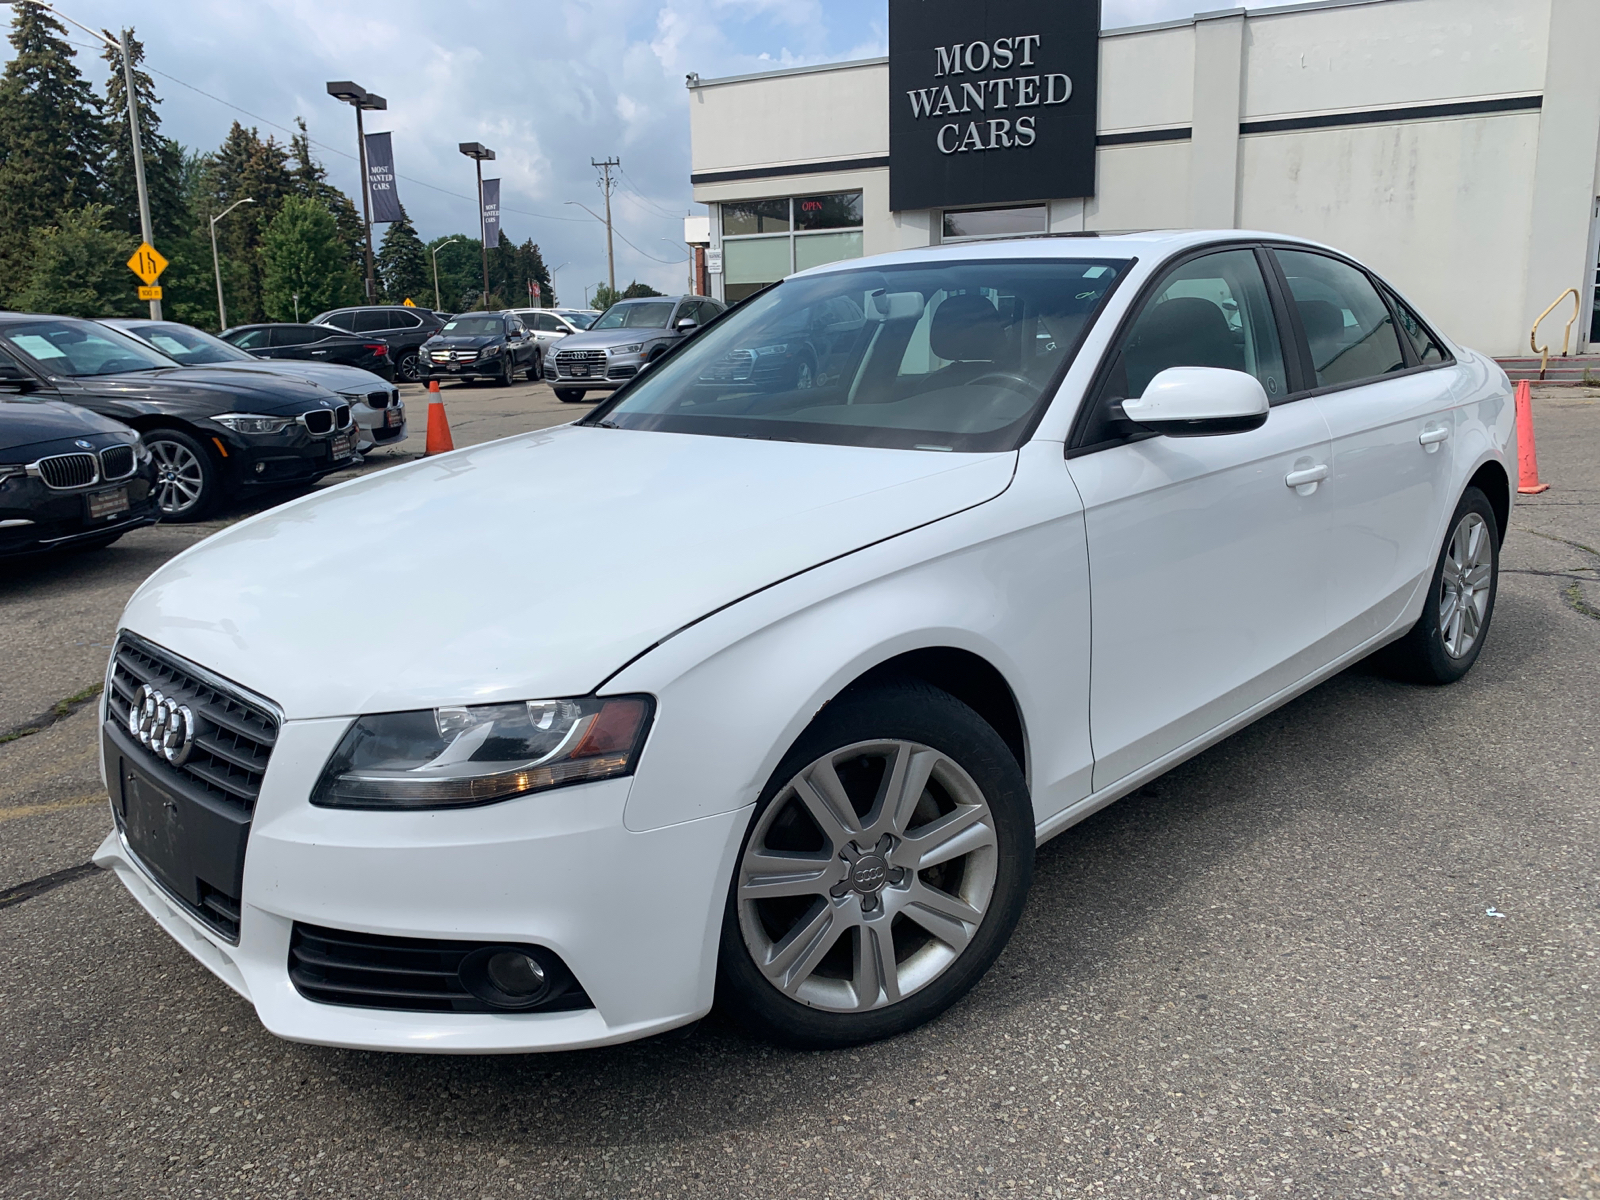 used 2011 Audi A4 car, priced at $10,964